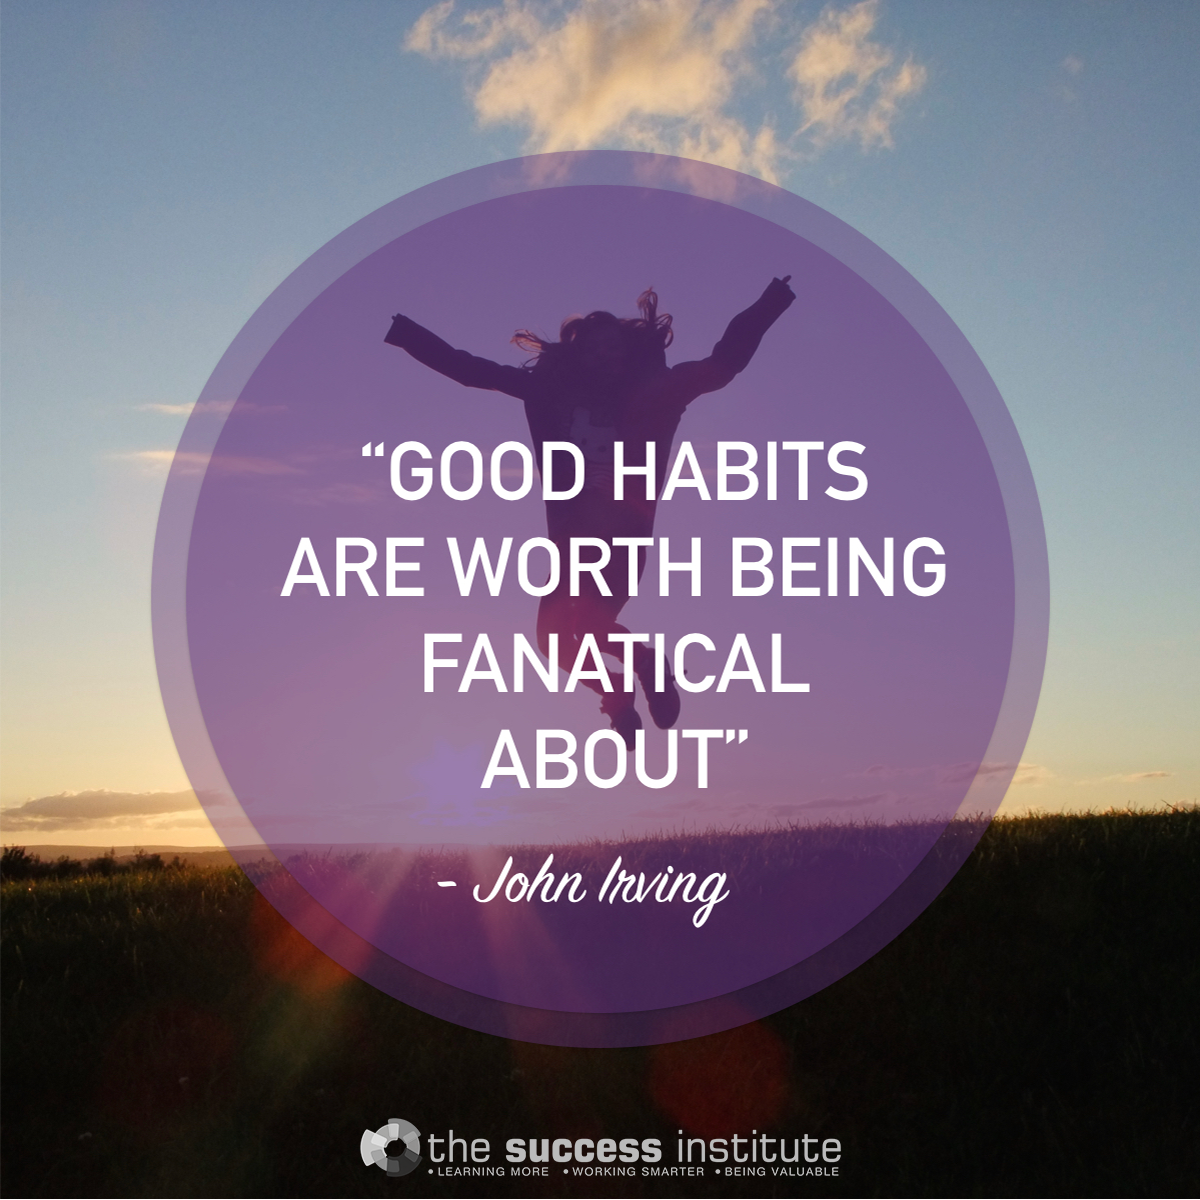 Good habits are worth being fanatical about.